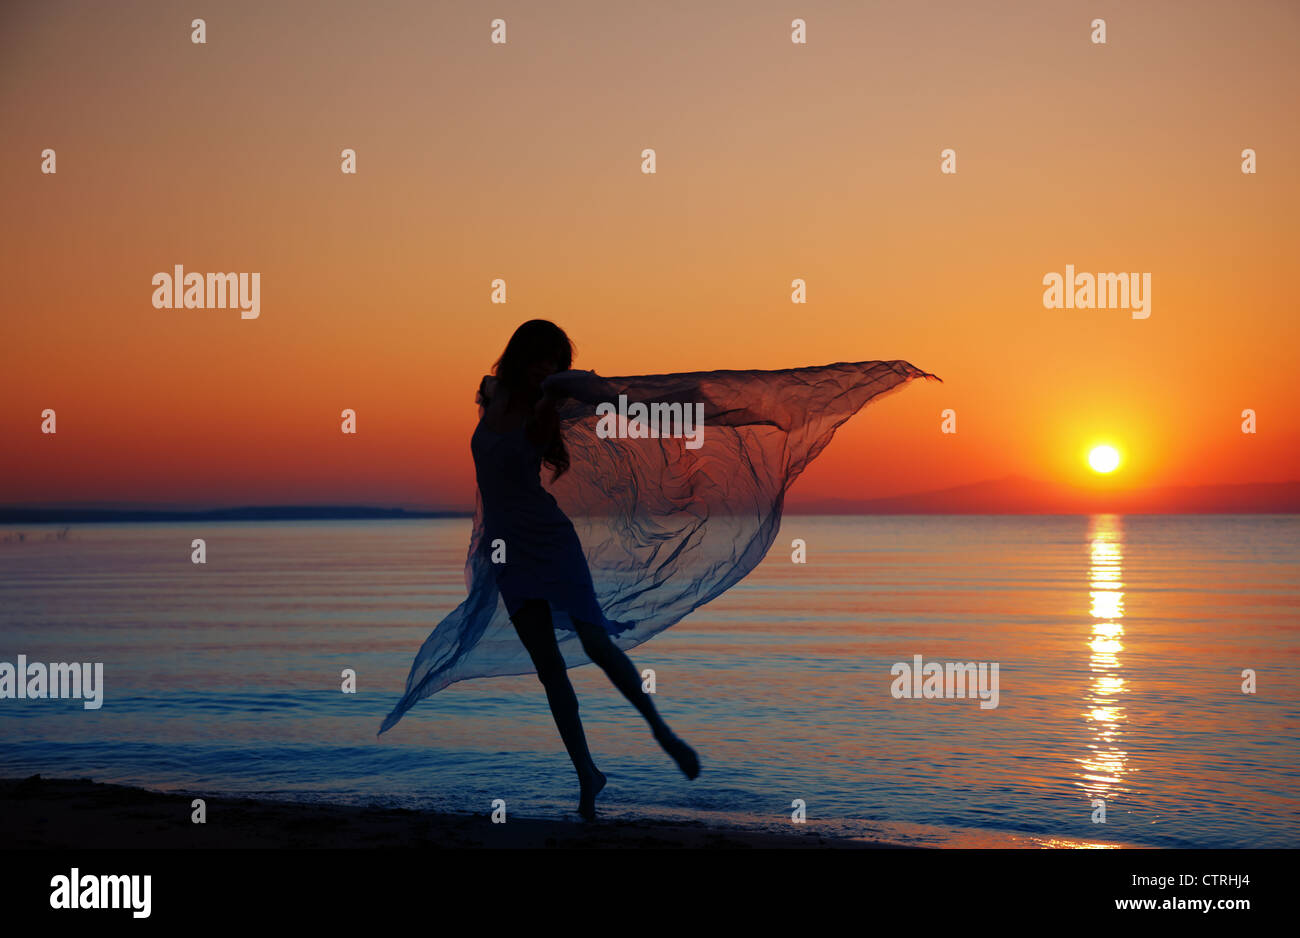 Silhouette of the nifty woman dancing at the sea during sunset. Natural light and darkness. Artistic colors added - Stock Image